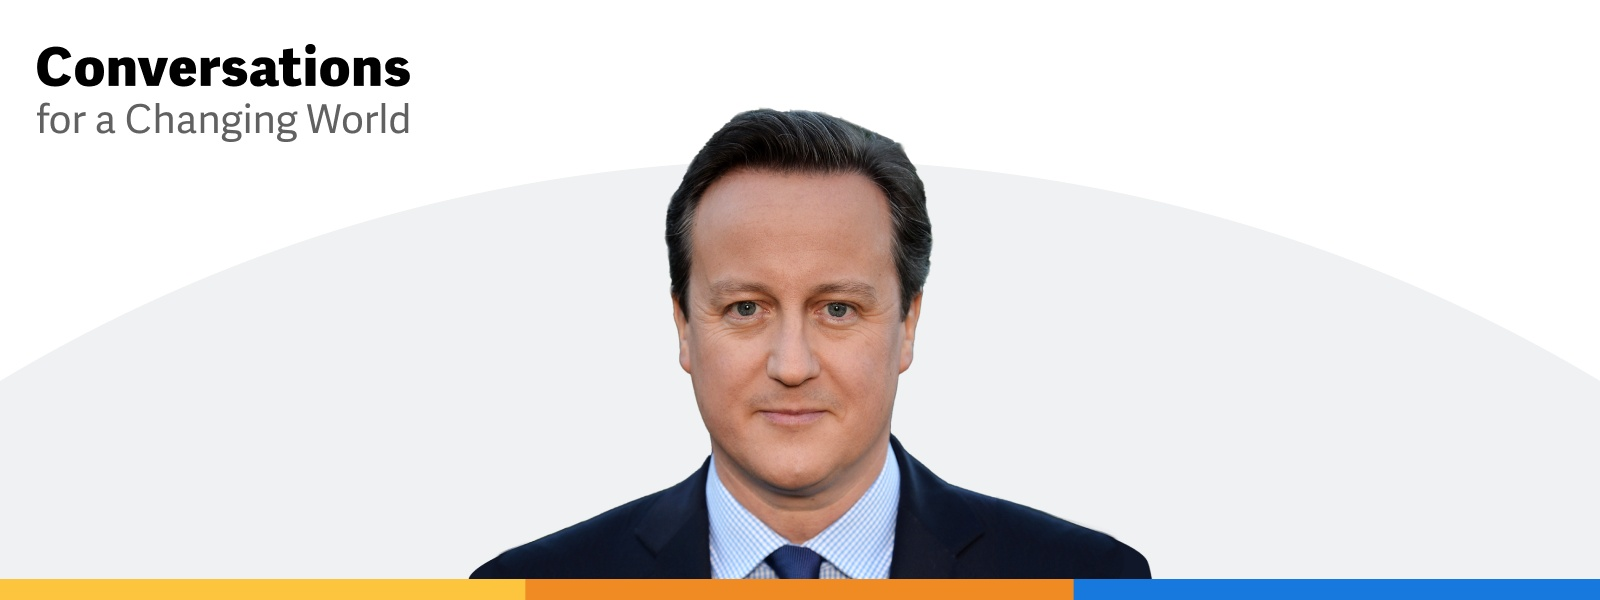 How Business Leaders Can Make A Difference A Conversation With David Cameron